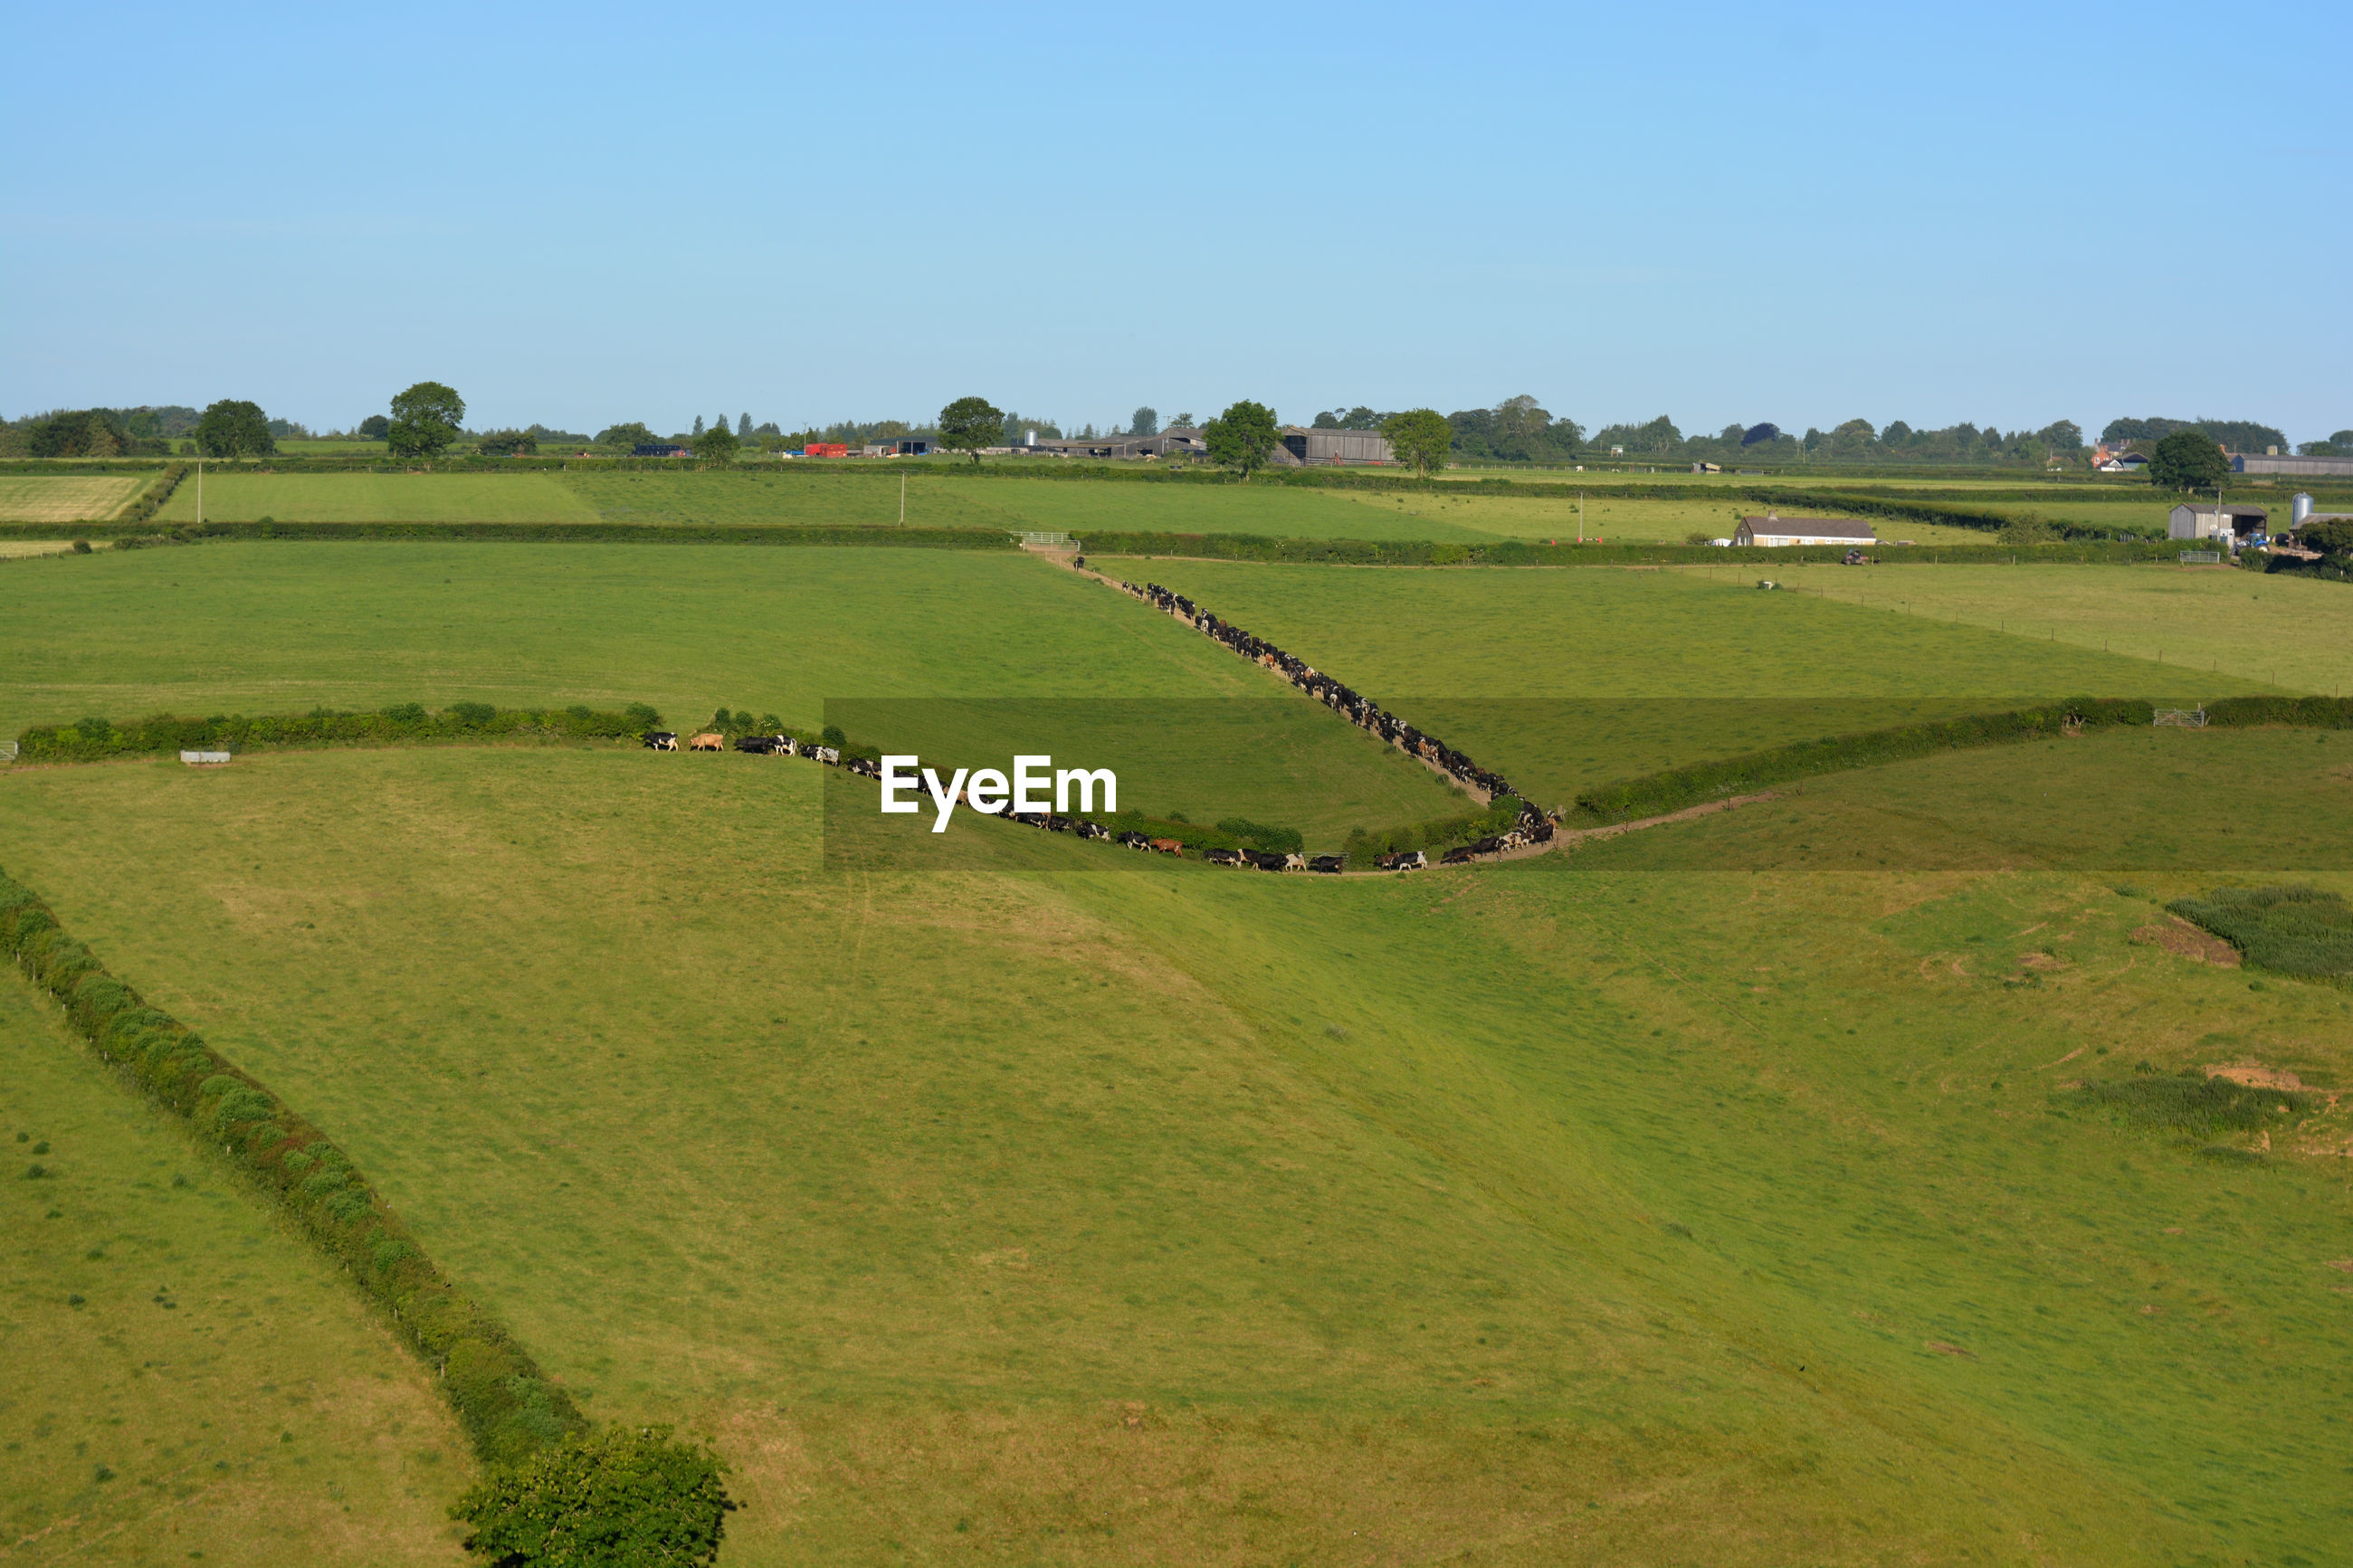 Landscape of green fields with a herd of cattle being moved to open pasture, dorset, england